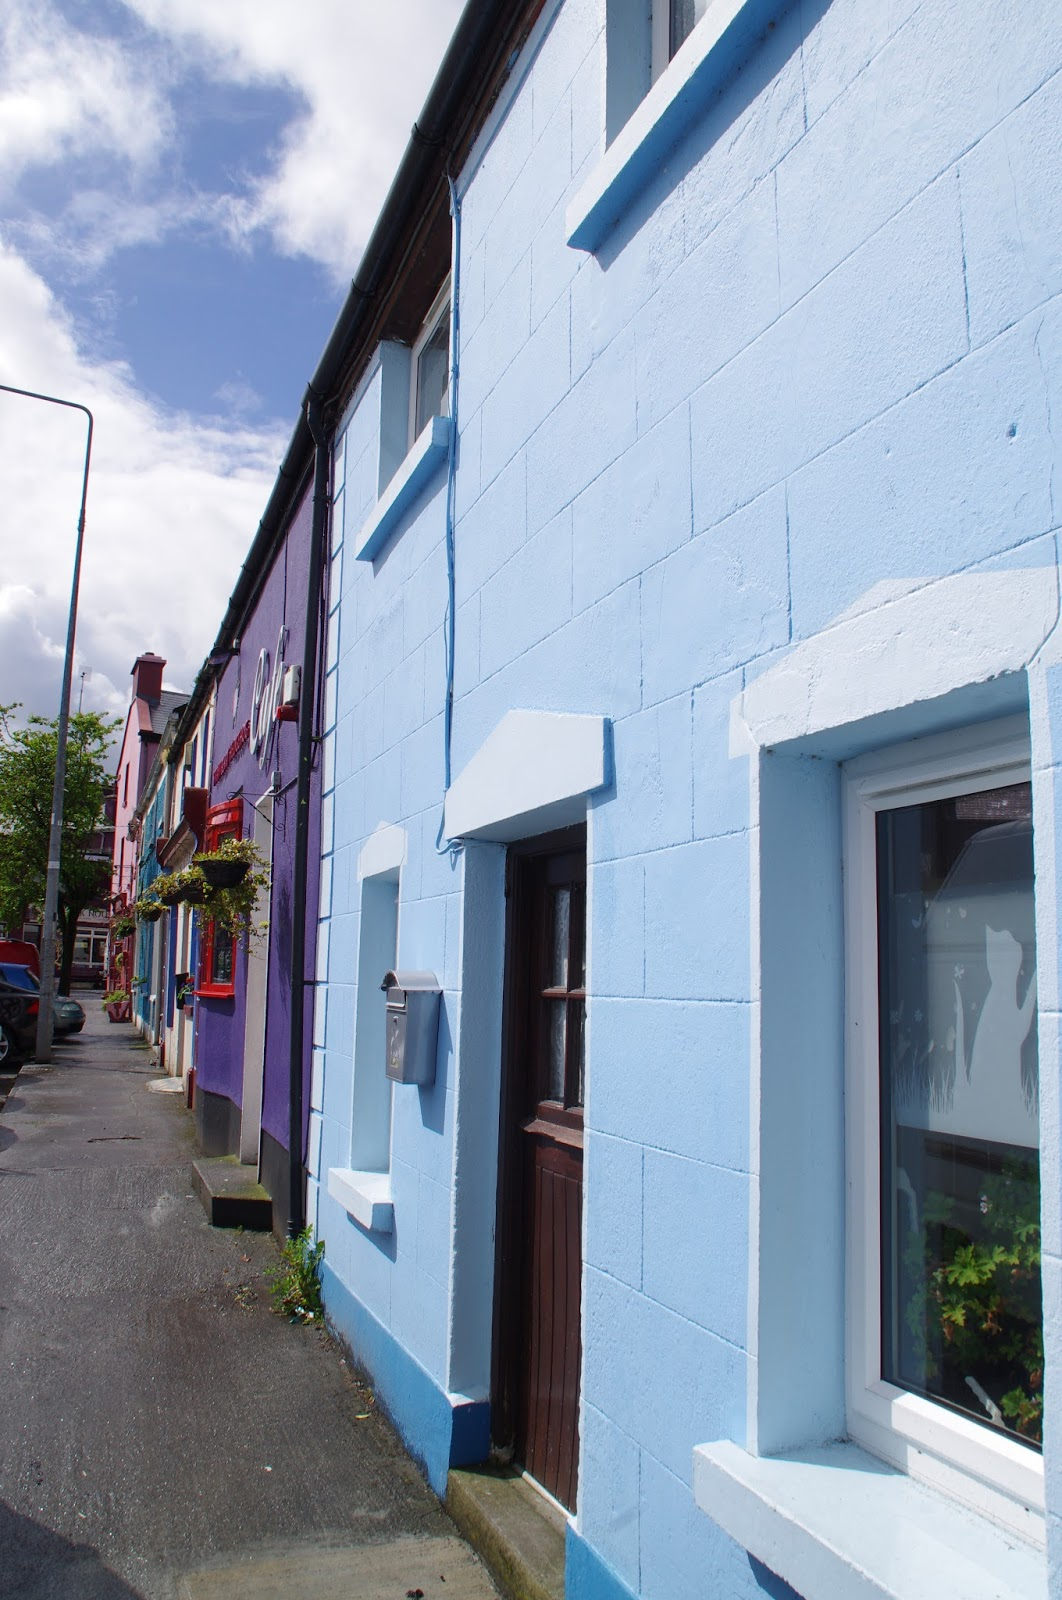 Colourful houses in Kinvara Ireland